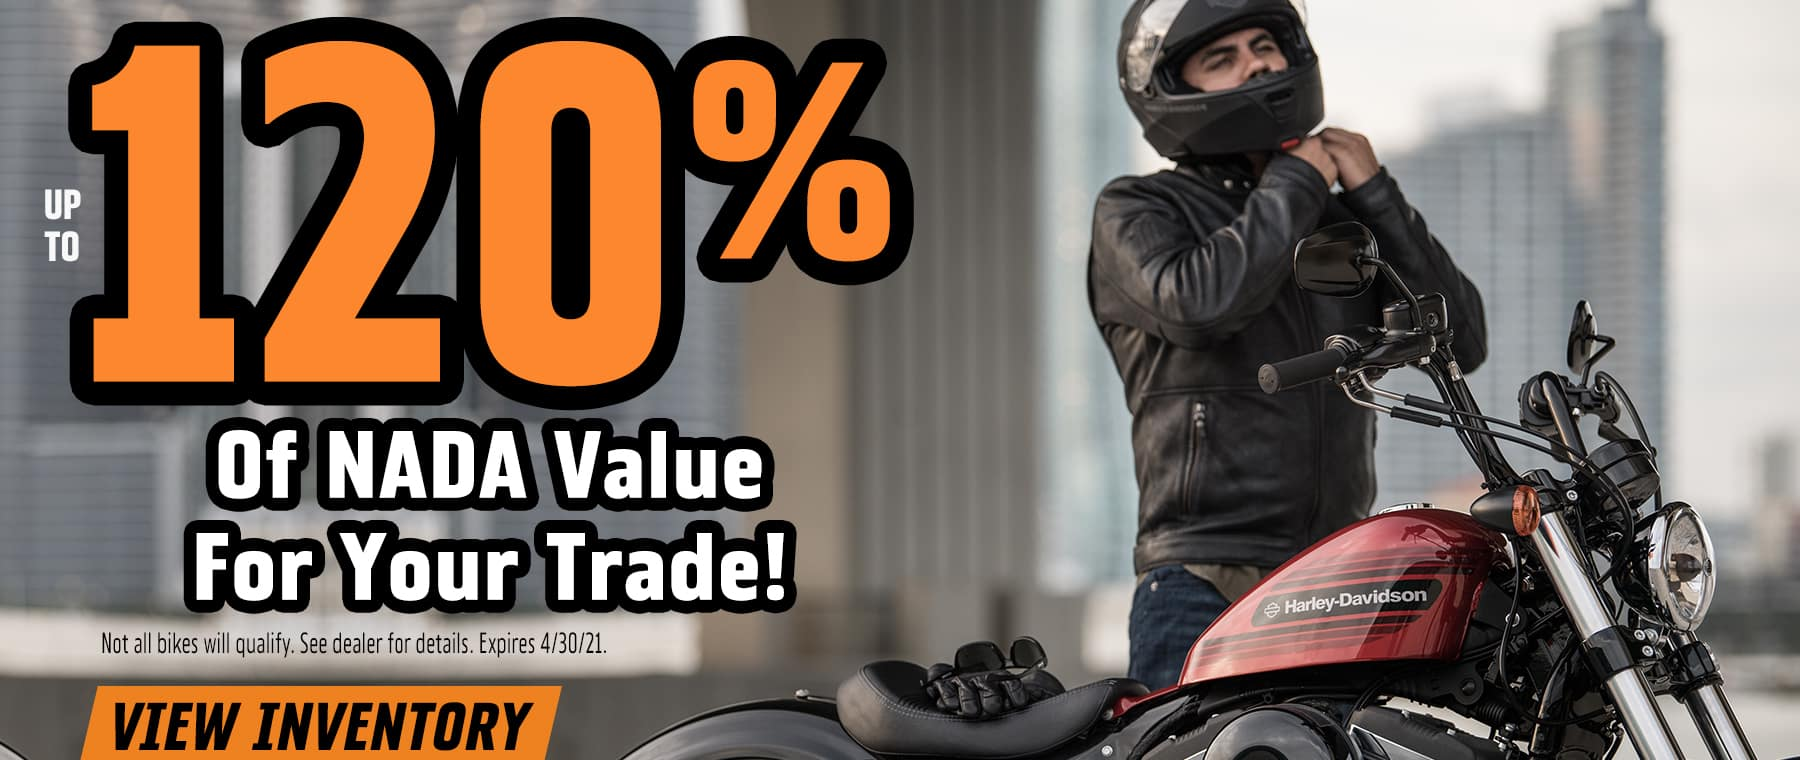 up to 120% NADA value for your trade